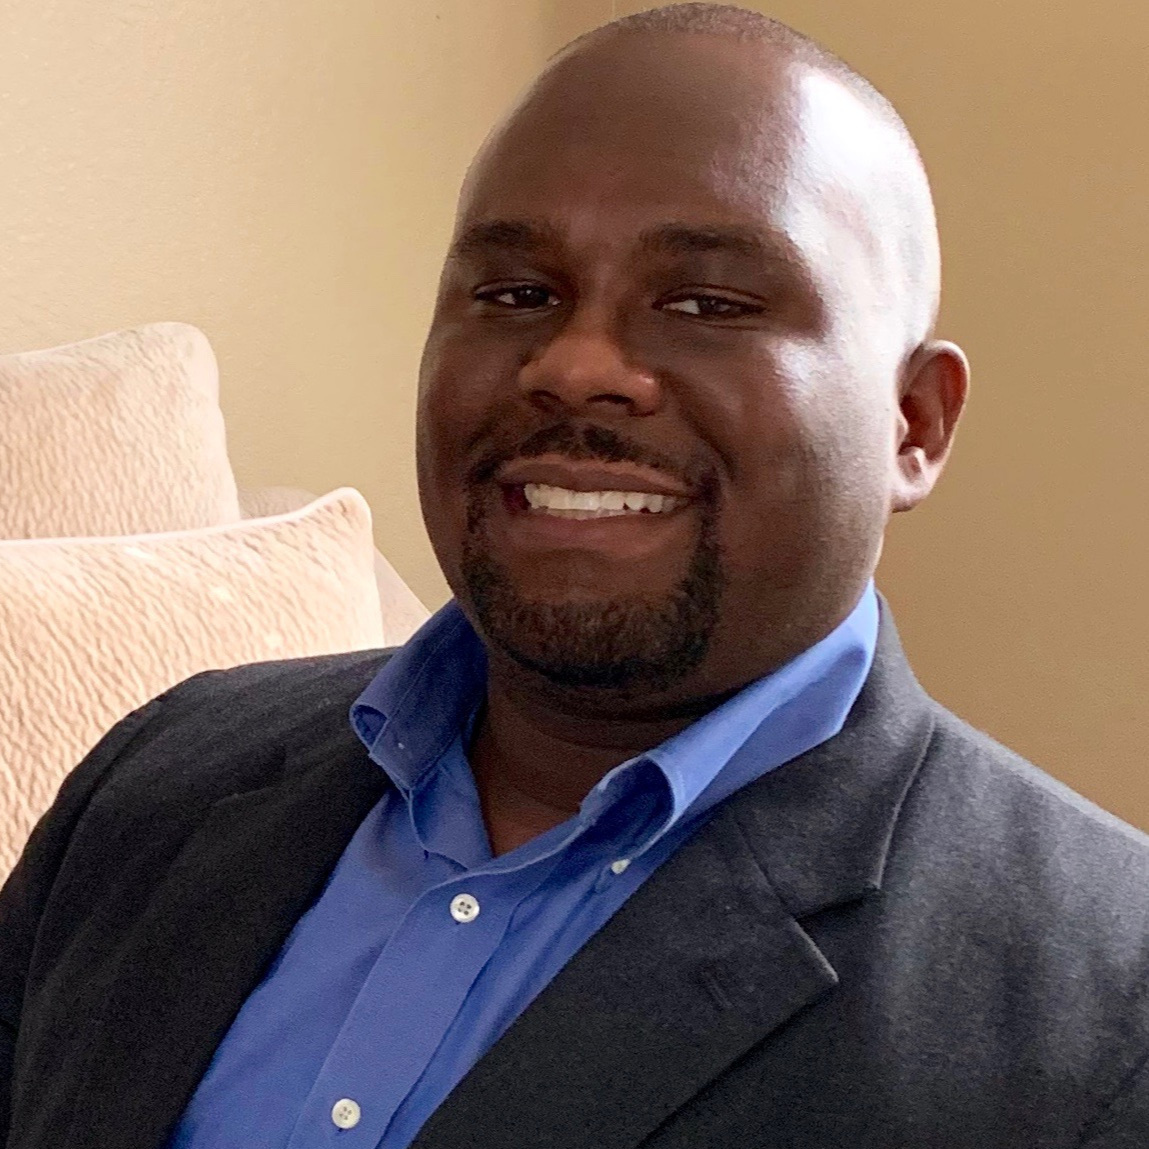 District #8Russell Johnigan - Russell is a trained facilitator with UCDavis' Racial Healing Circles through its Health Office of Equity, Diversity, and Inclusion. He is a Union Representative and Contract Negotiator with Service Employees International Union (SEIU), working with California State Department leaders, State Legislators and oversight agencies. He's held positions with the federal government including the Transportation Security Administration within the Department of Homeland Security. Russell regularly attends Sacramento City Council meetings and has volunteered with the Arizona Veterans Stand Down Alliance while obtaining his law degree.